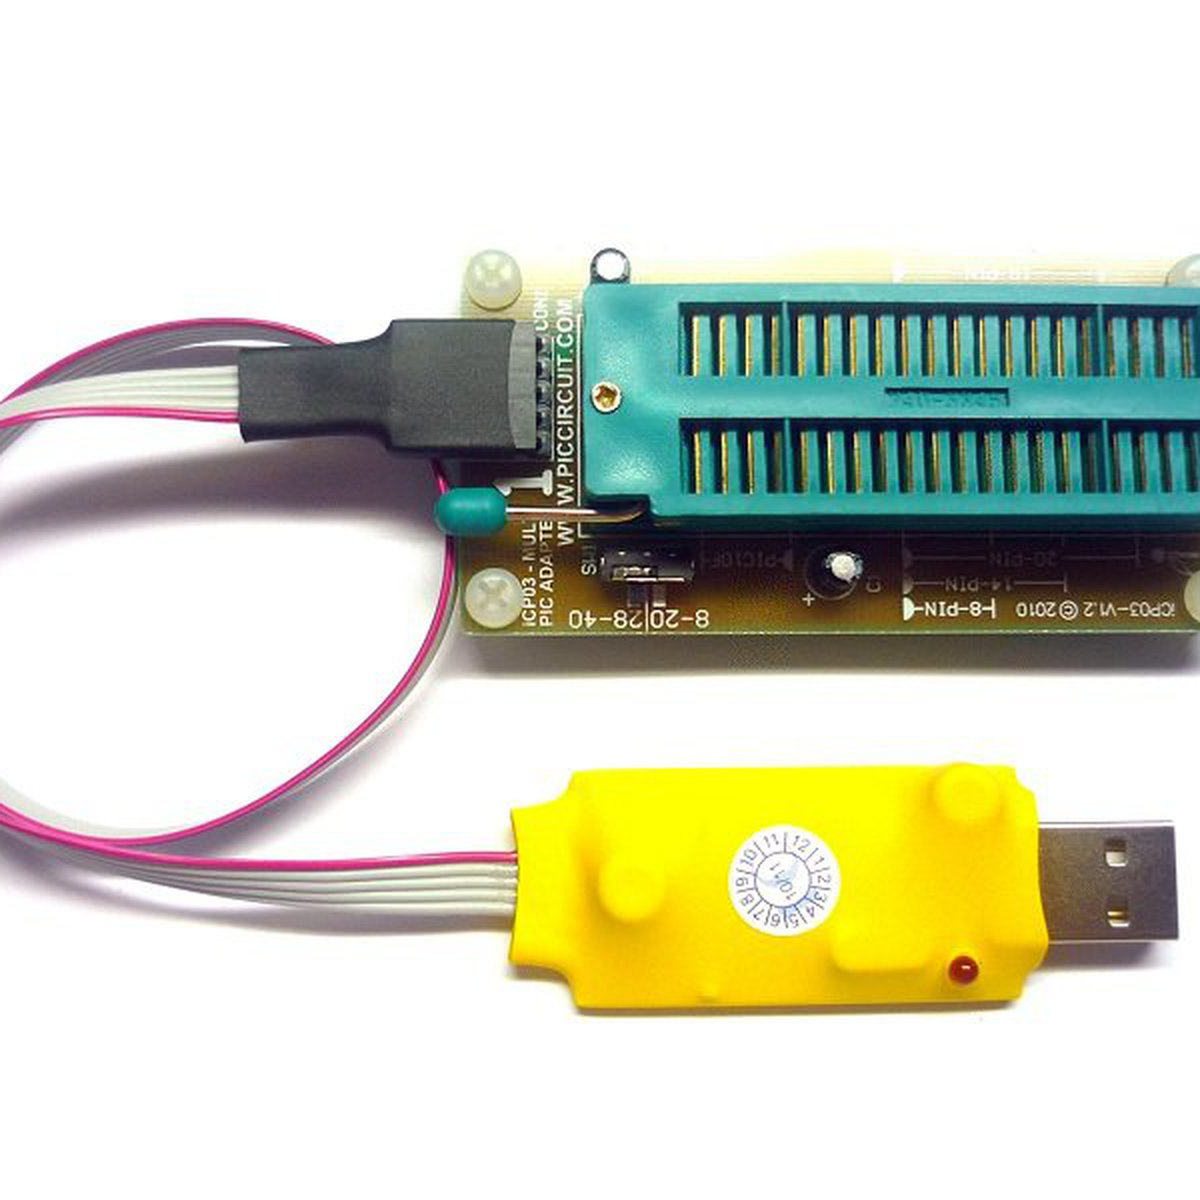 iCA01 - USB Microchip PIC Programmer Set from PICcircuit on